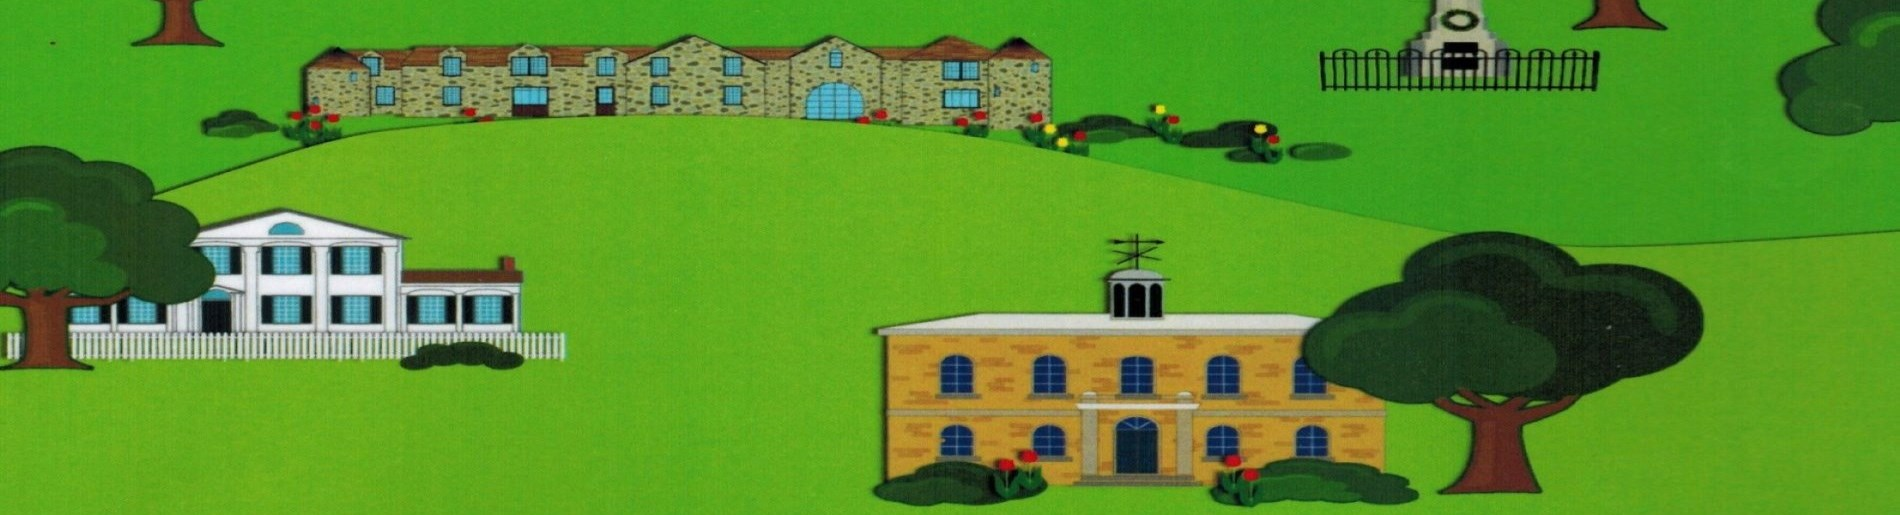 cartoon drawing of old buildings and landscape